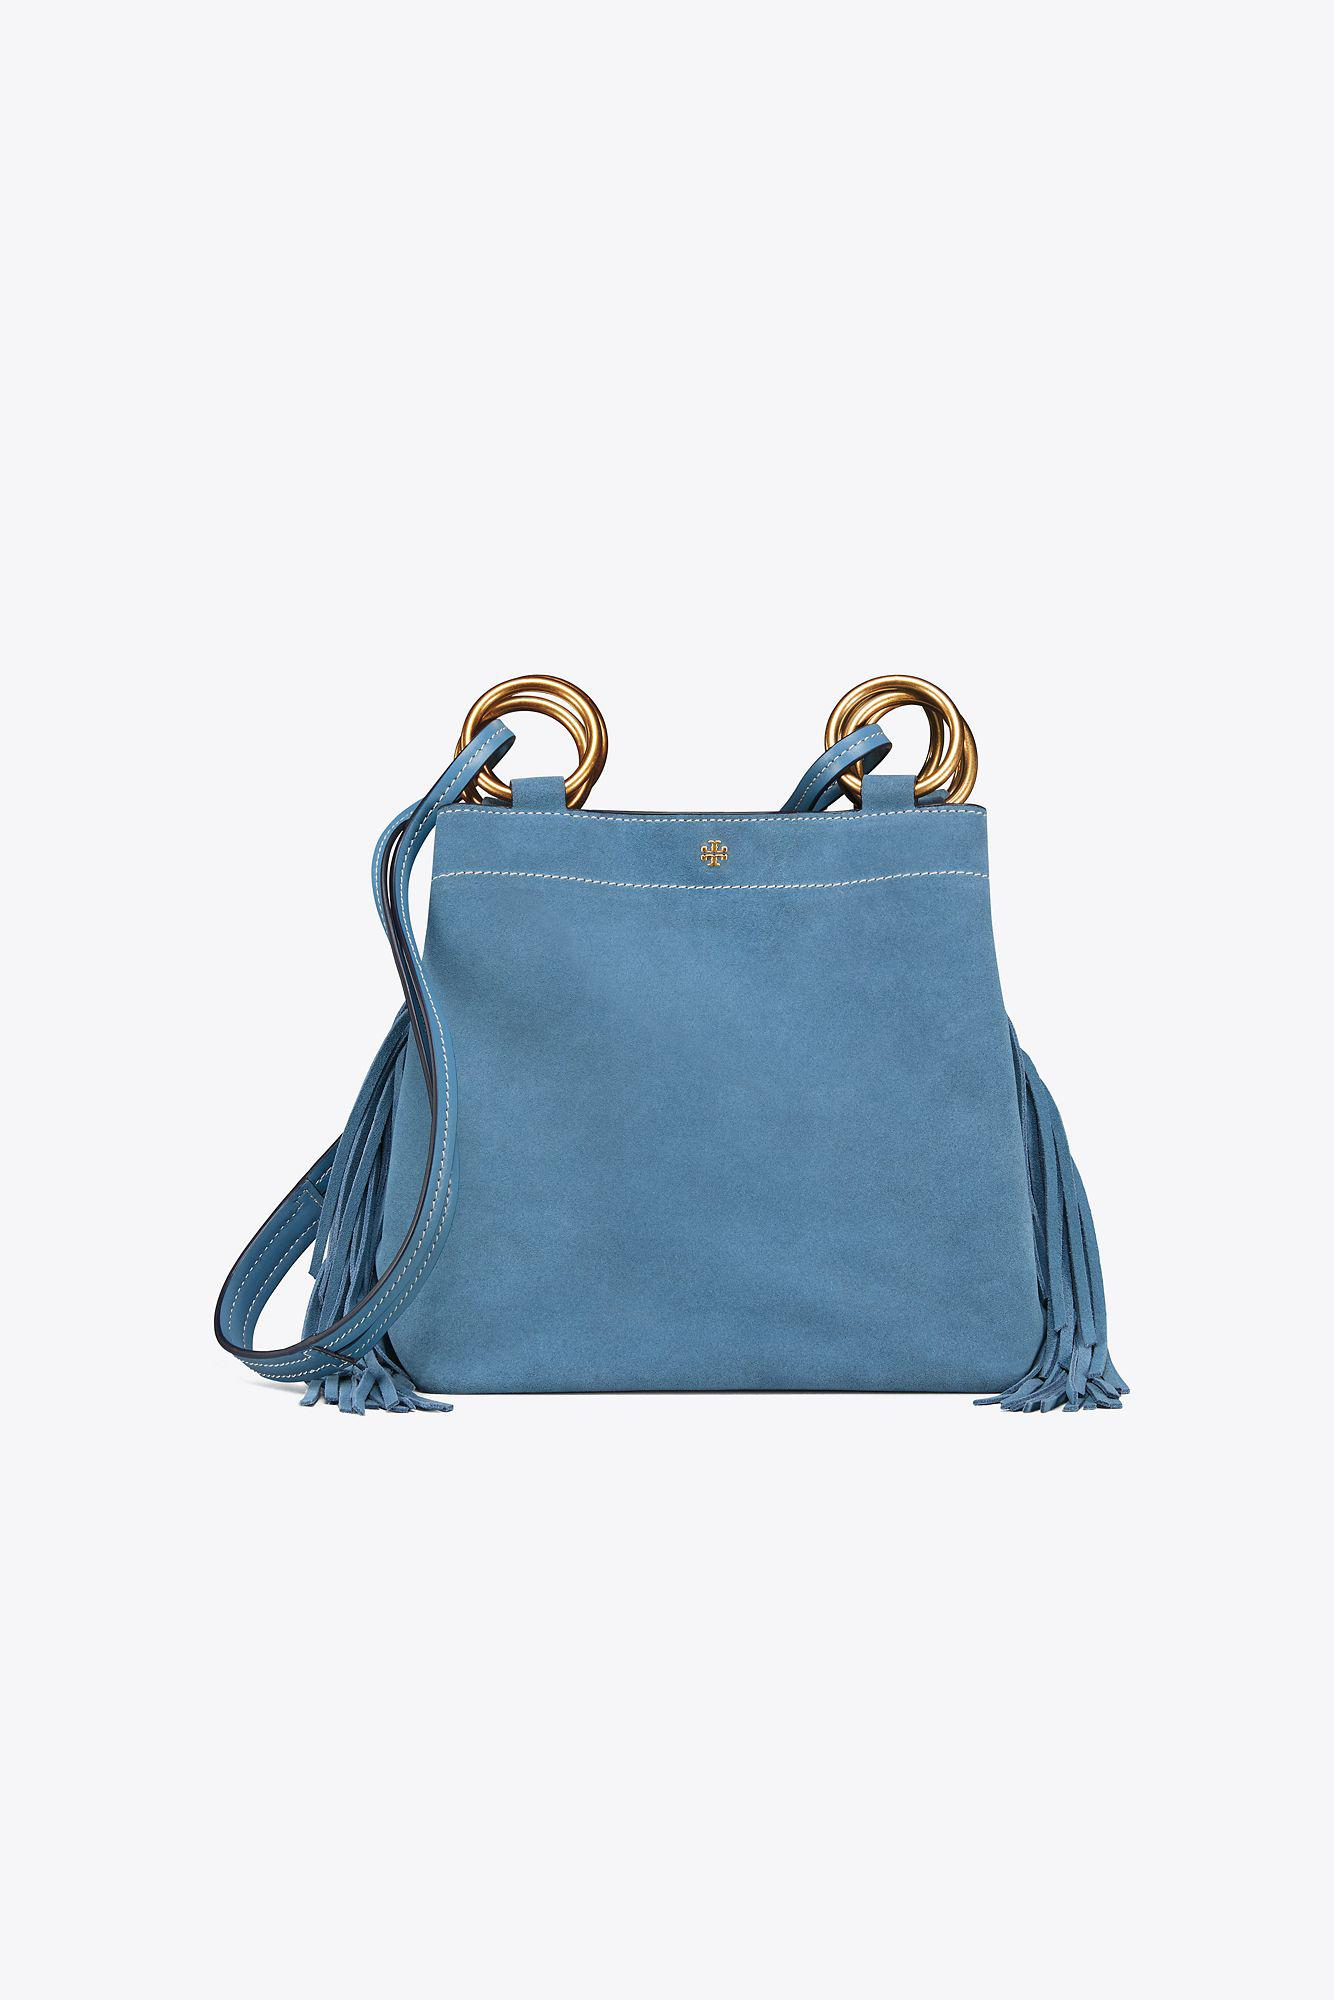 991f7404c265 Tory Burch Farrah Fringe Small Tote in Blue - Save 42.61904761904762 ...